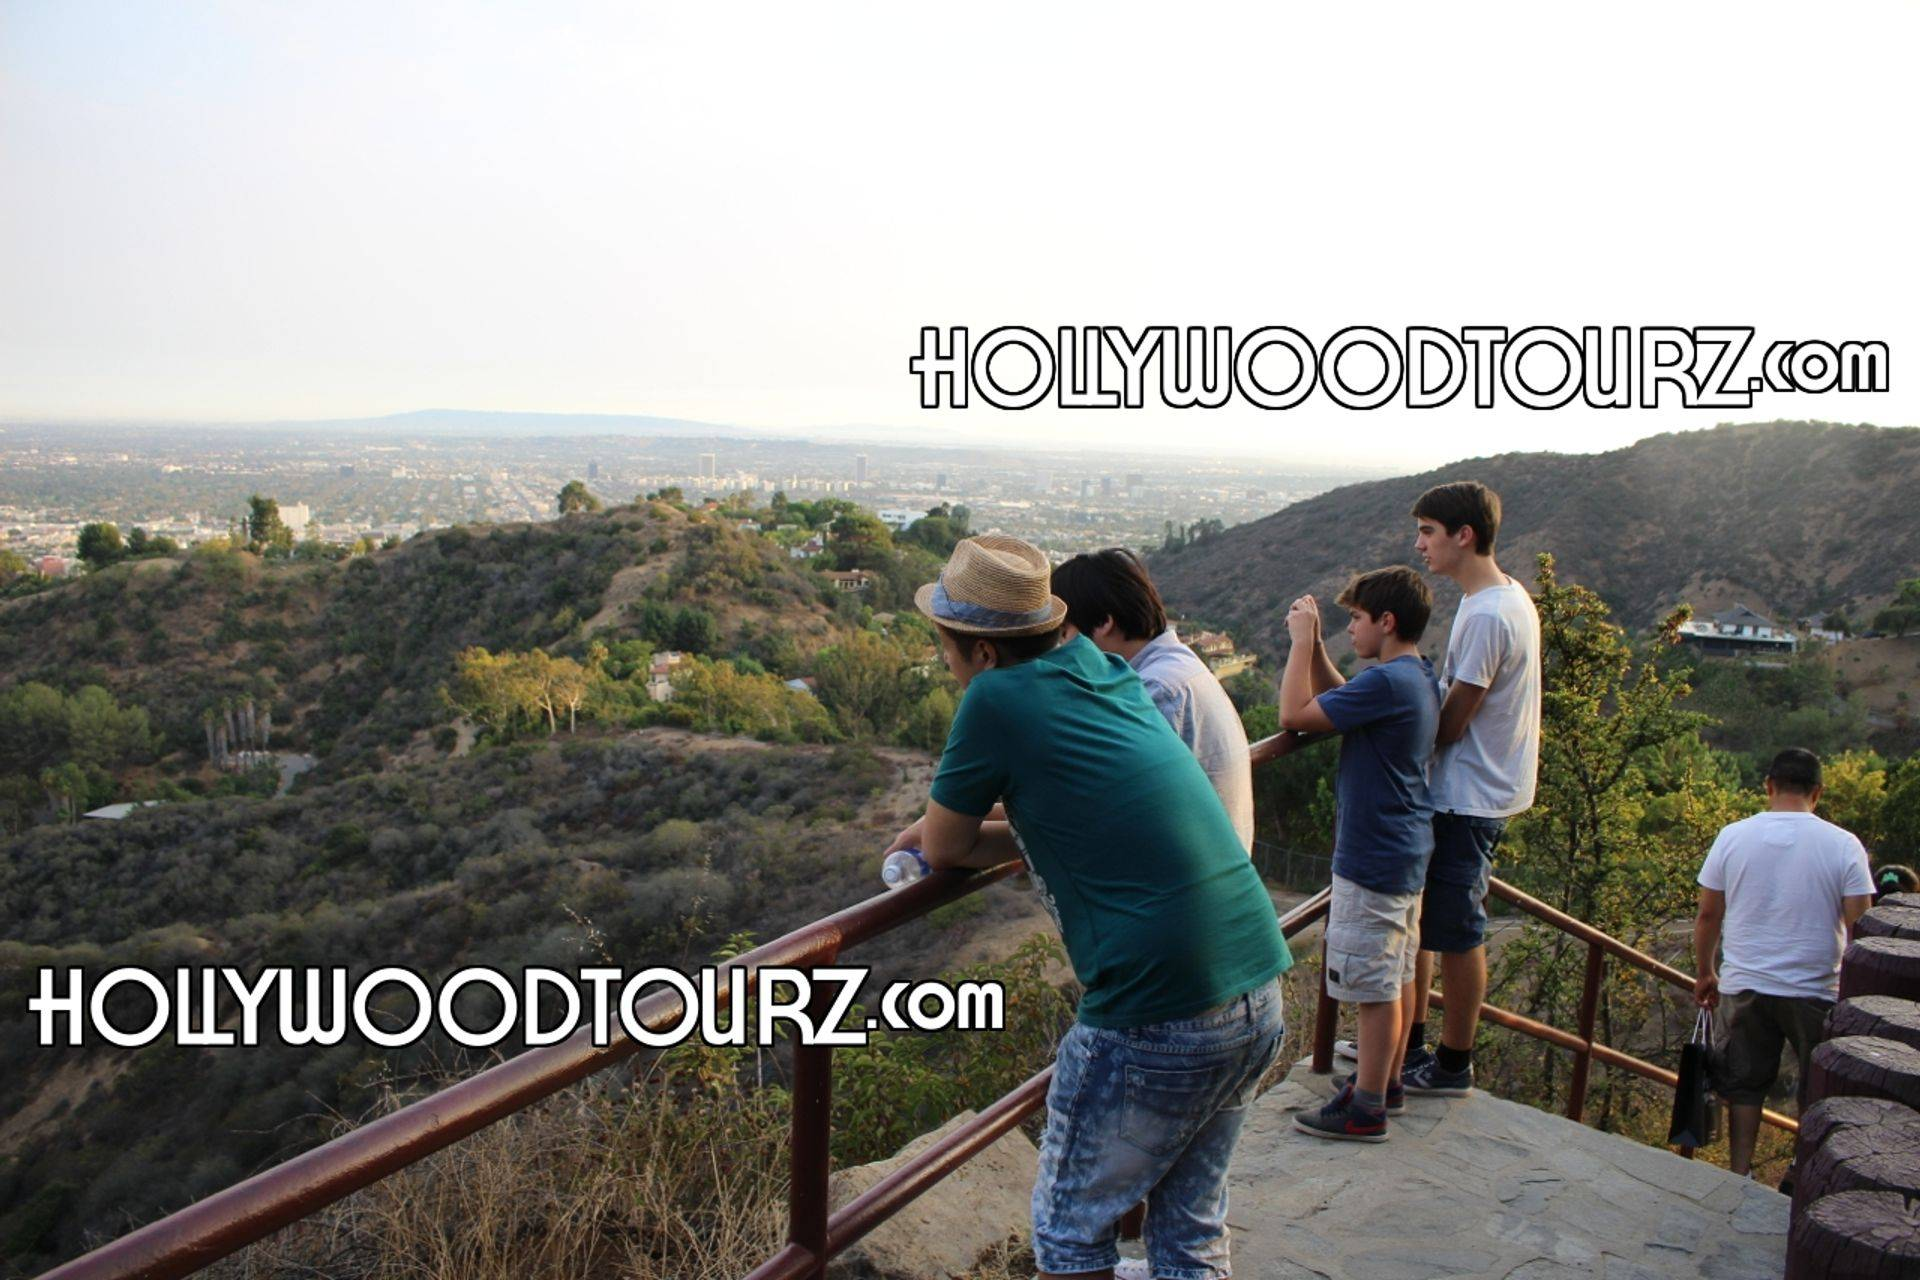 Hollywood Tours Sightseeing bus and bike Tours in Los Angeles, California